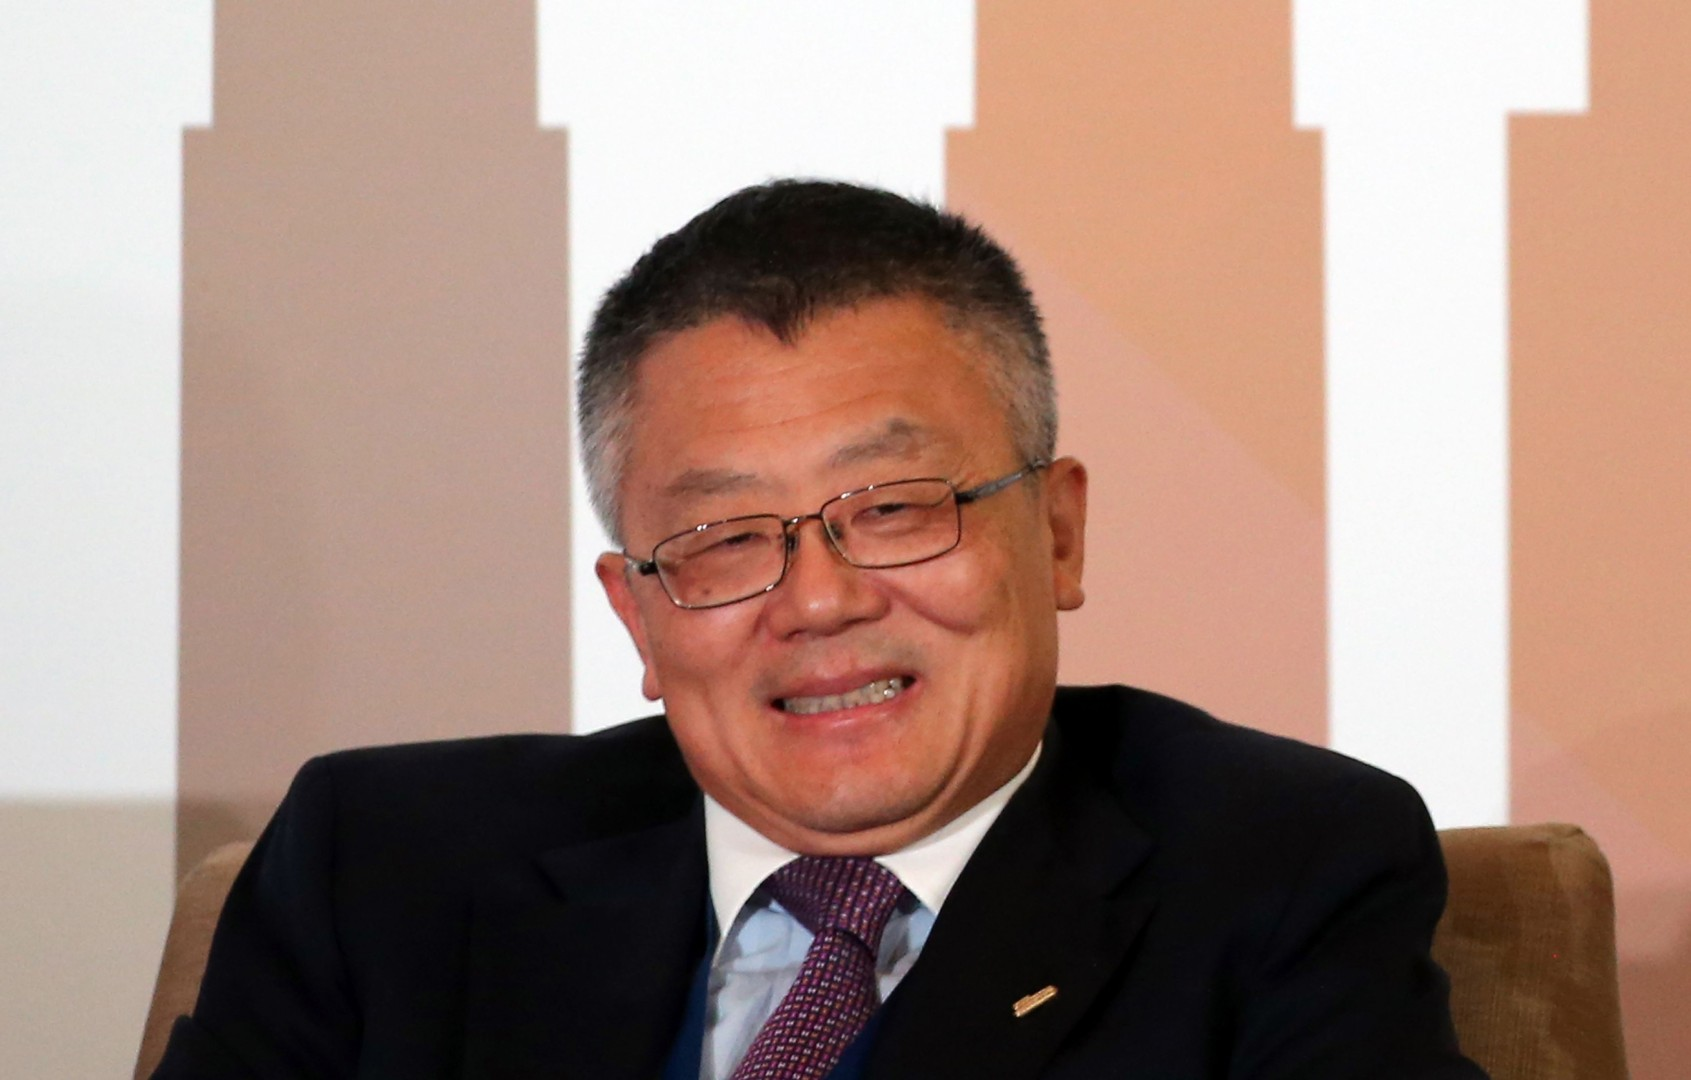 What Singapore is saying by expelling China hand Huang Jing